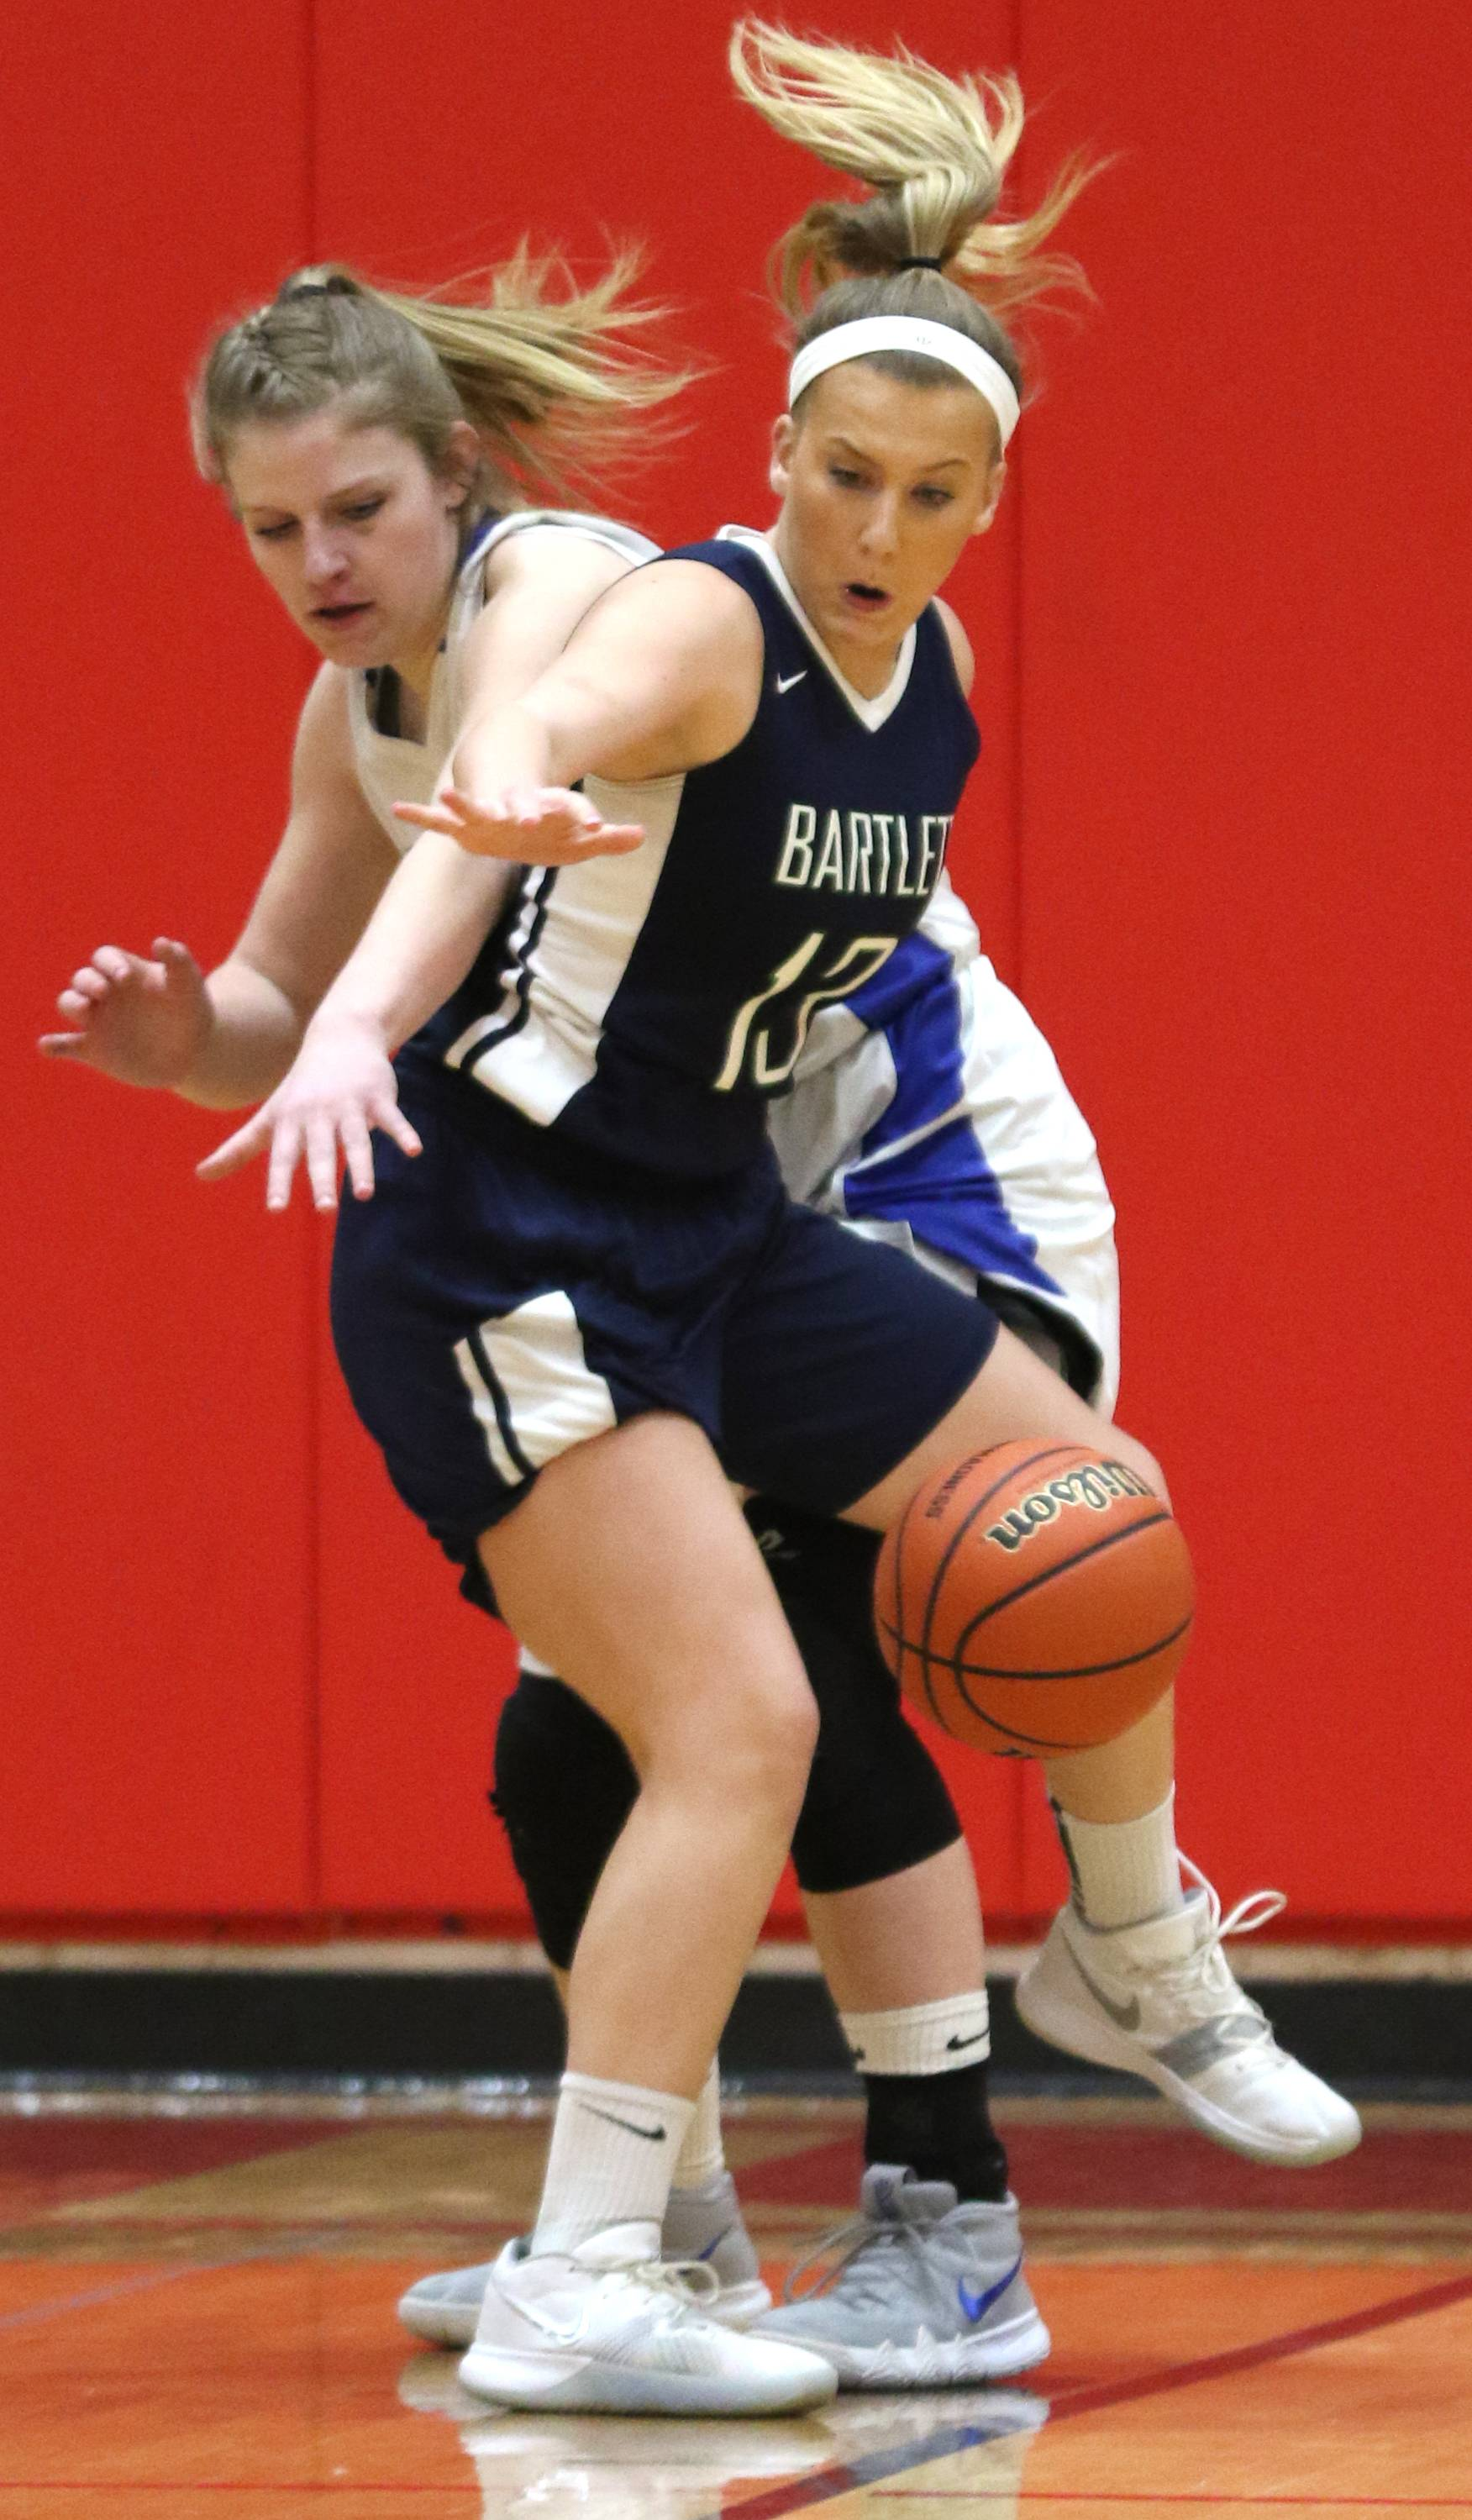 Bartlett's Teagan Noesen, front, and Geneva's Lindsay Blackmore scramble for the ball during sectional semifinal girls basketball action at Batavia Monday night.